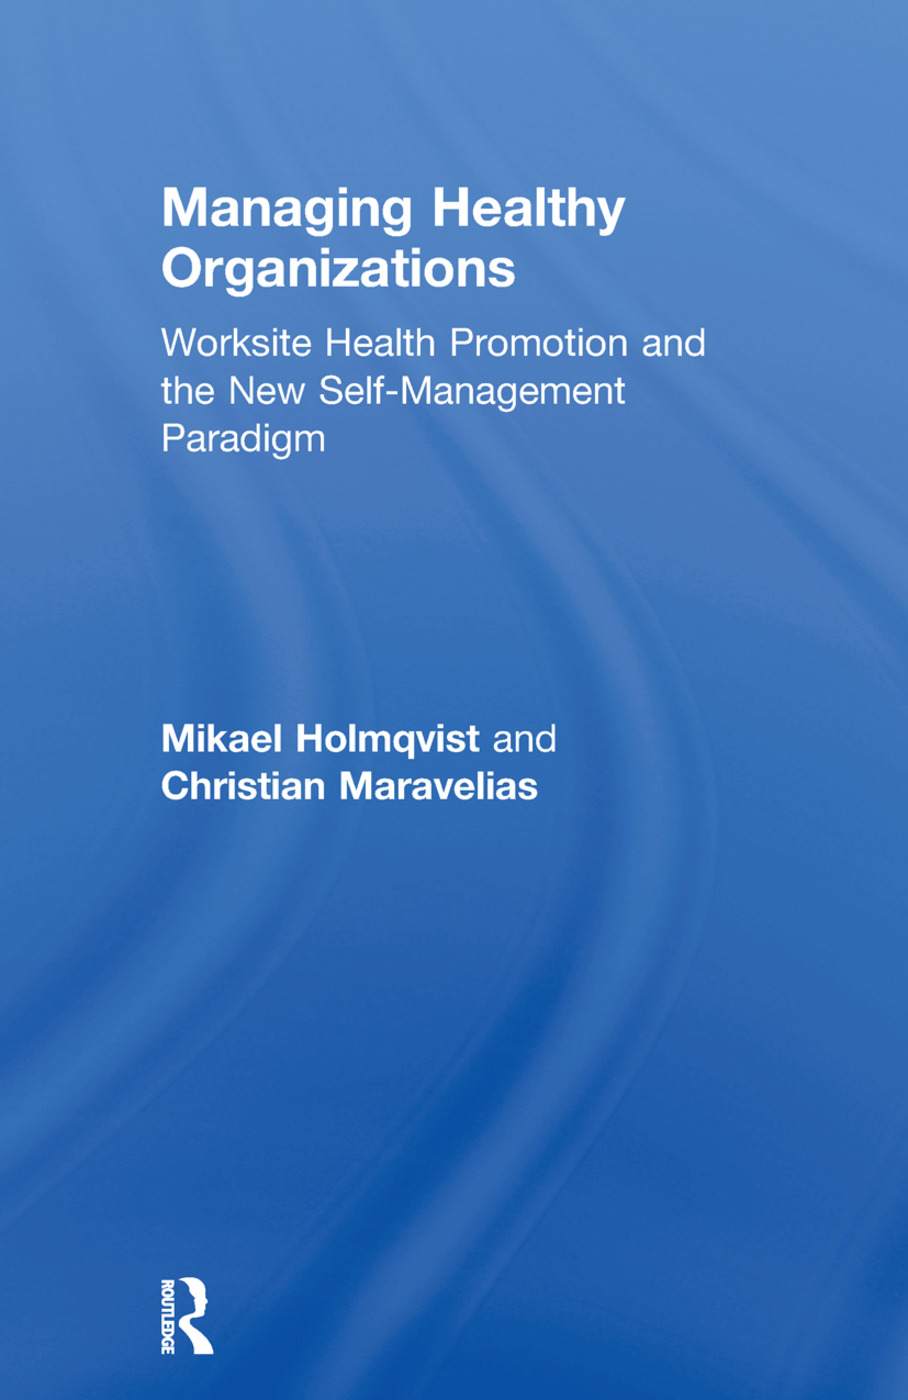 Managing Healthy Organizations: Worksite Health Promotion and the New Self-Management Paradigm book cover